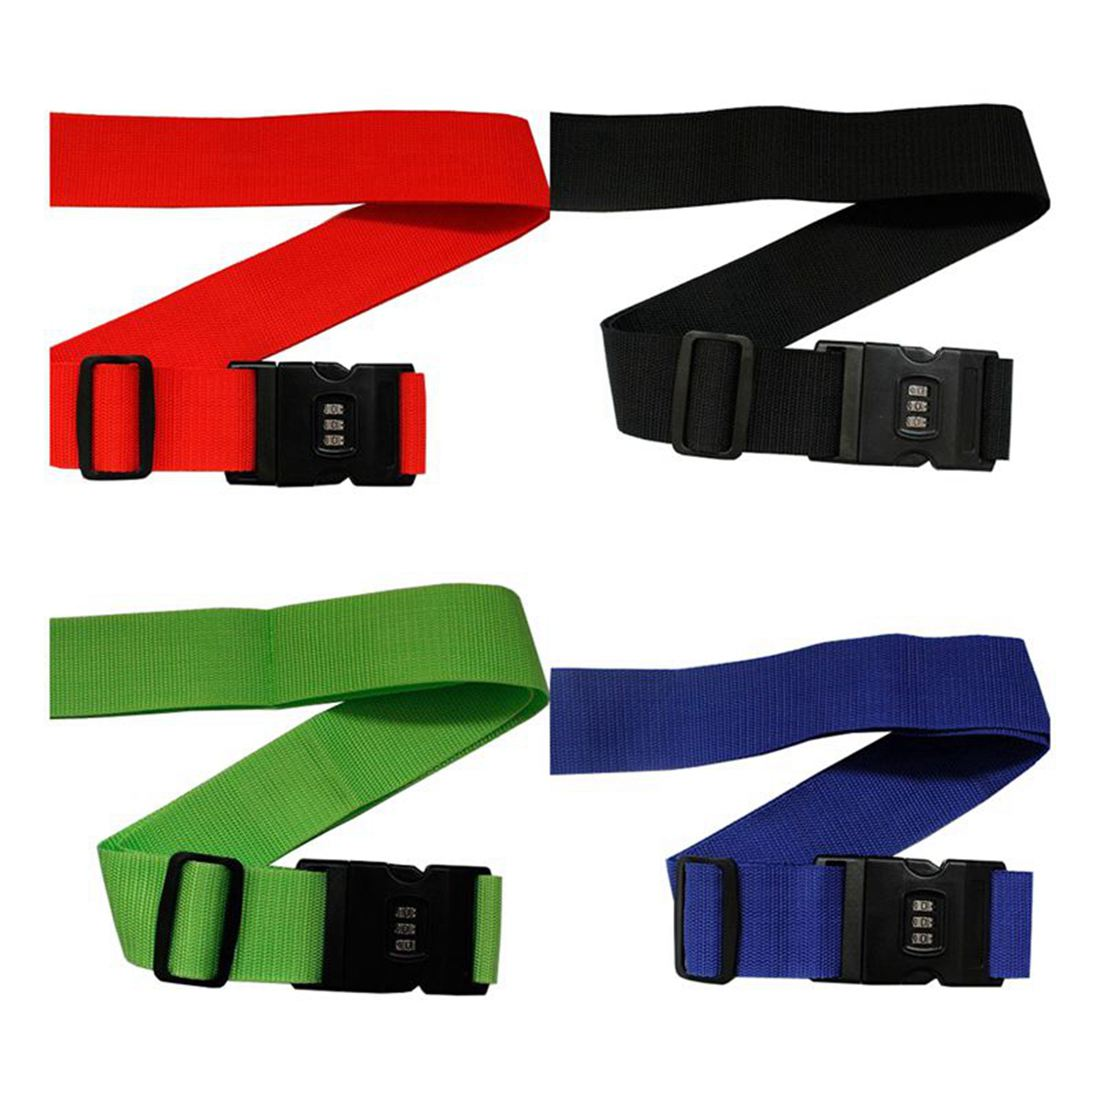 THGS 4 Ultra Resistant blue + green + red + black polypropylene plastic password lock luggage strap / Baggage strap